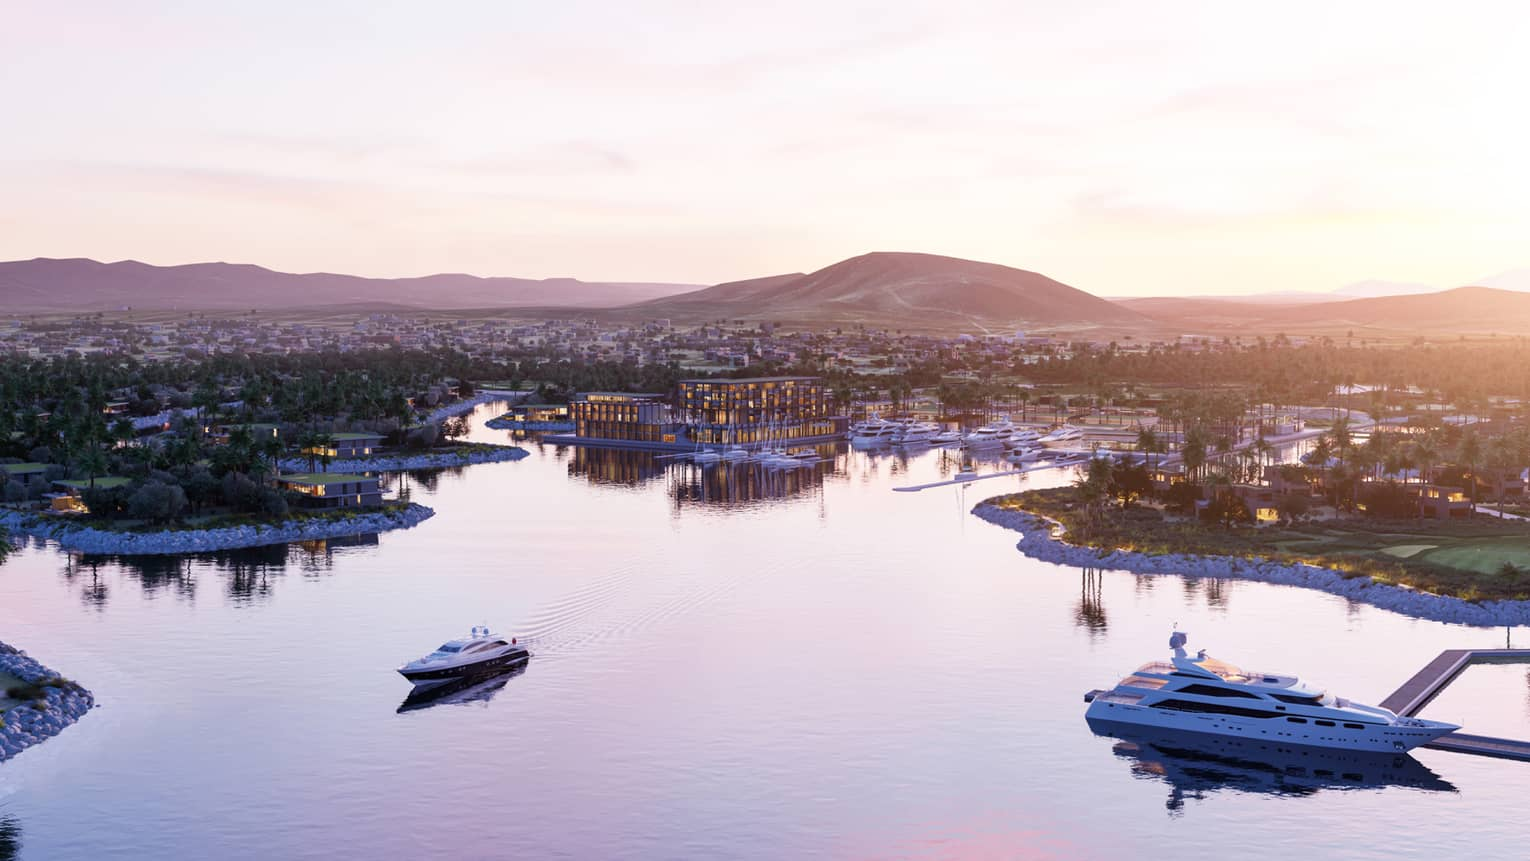 Aerial view of marina, large yachts sailing on water with Los Cabos resort, town, mountains at sunset